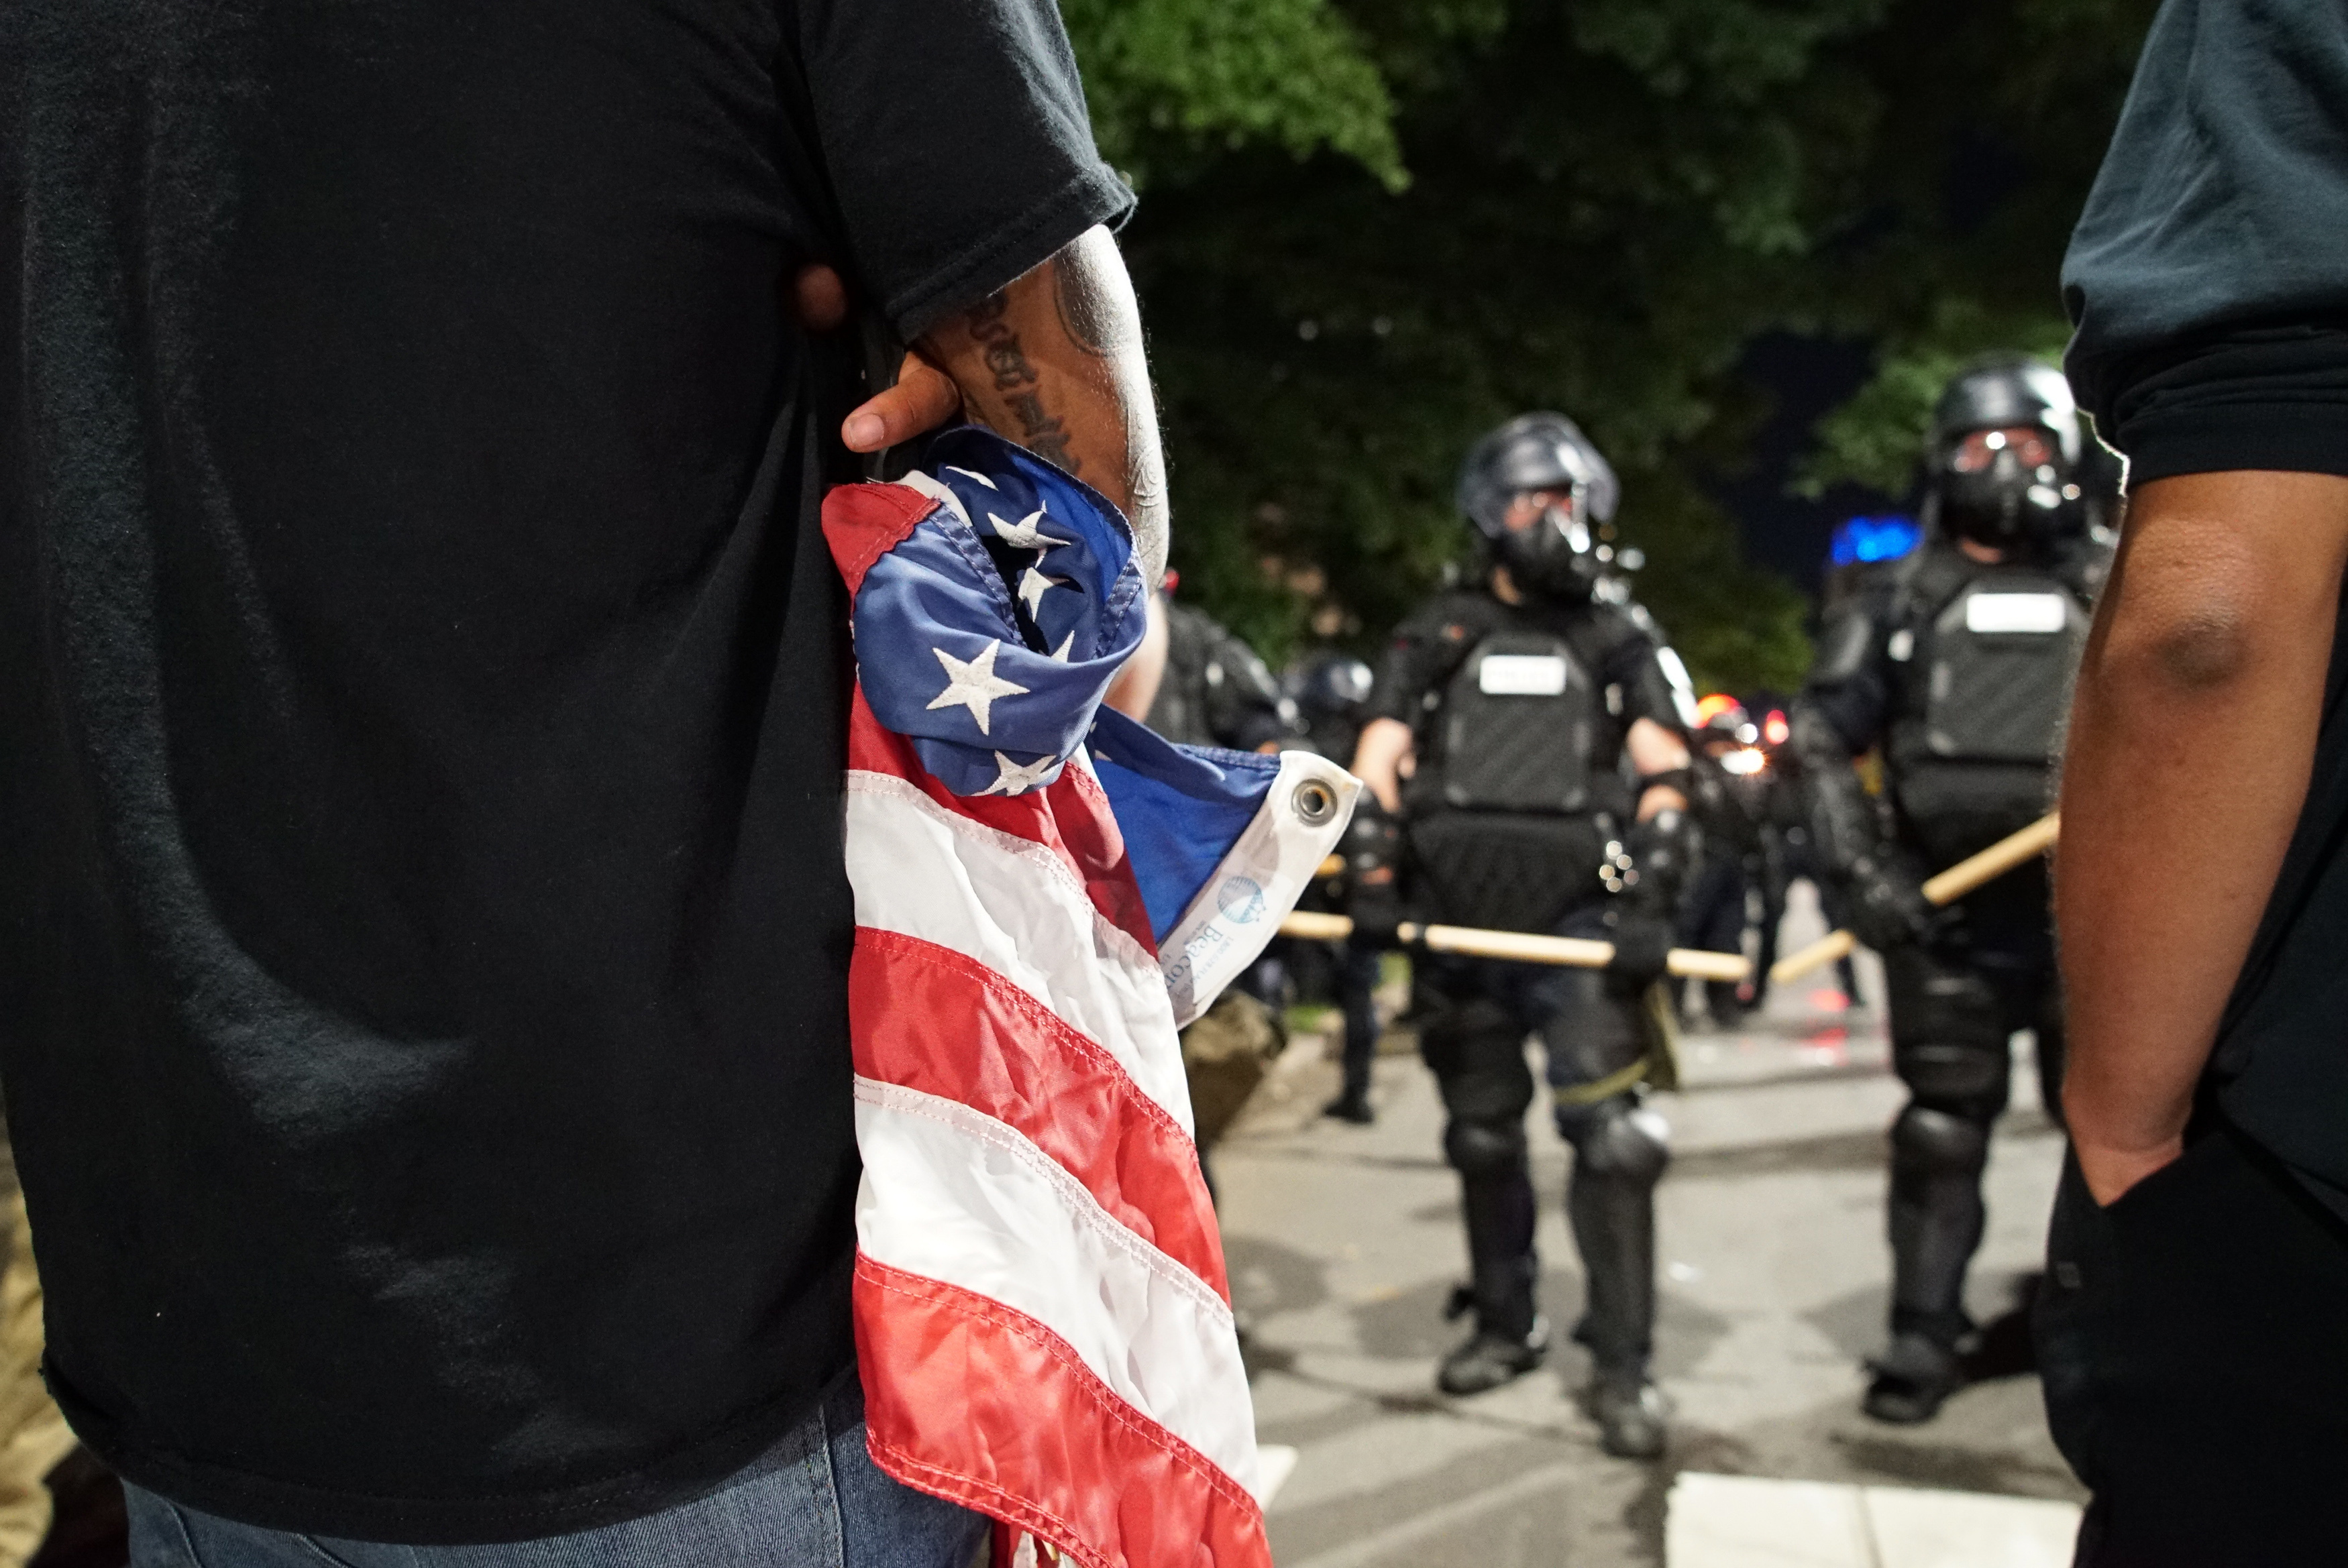 A protester holds a tattered American flag as police stand guard over the old state capitol in in Raleigh, N.C., on Sunday, May 31, 2020. It was the second day of protests in the North Carolina capital following the death of Minnesotan George Floyd while in police custody. (AP Photo/Allen G. Breed)